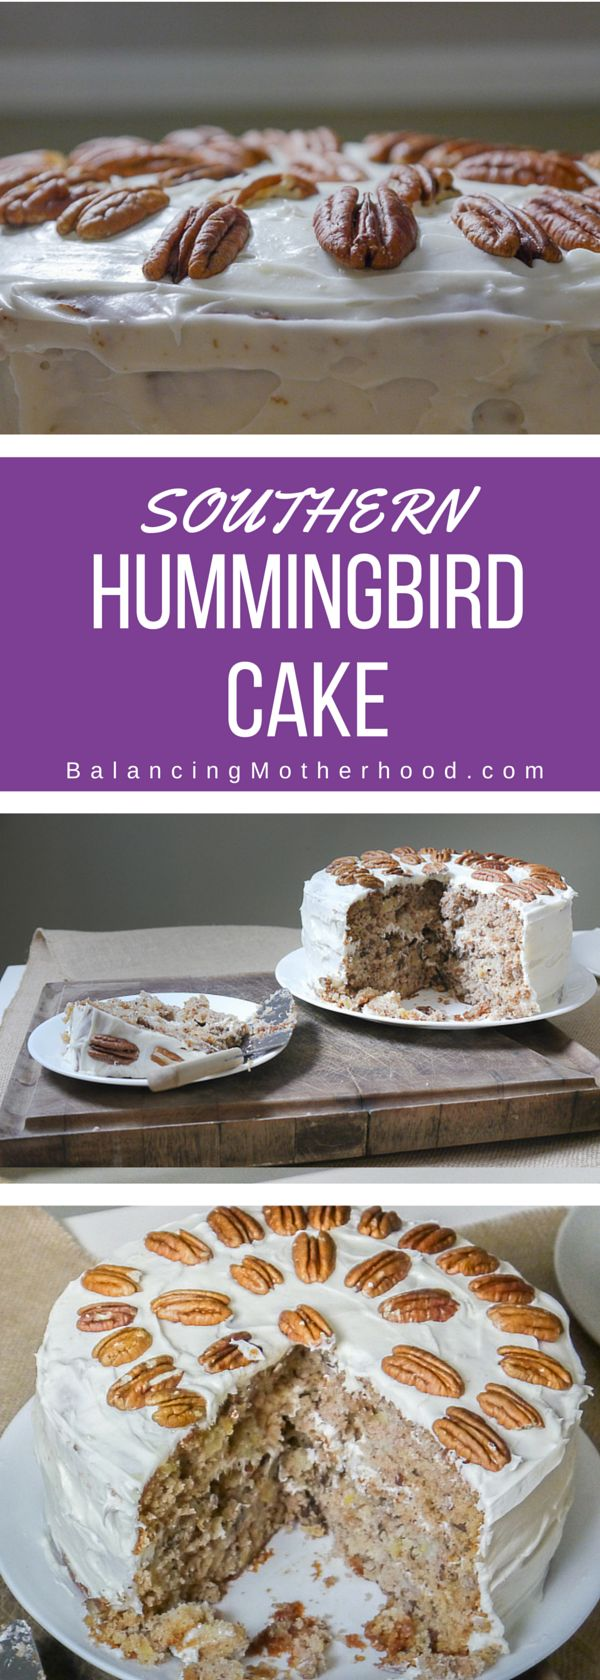 Southern Living's most requested recipe EVER is this southern Hummingbird Cake. Moist and delicious, it's really easy to make and a total winner! Get the recipe.